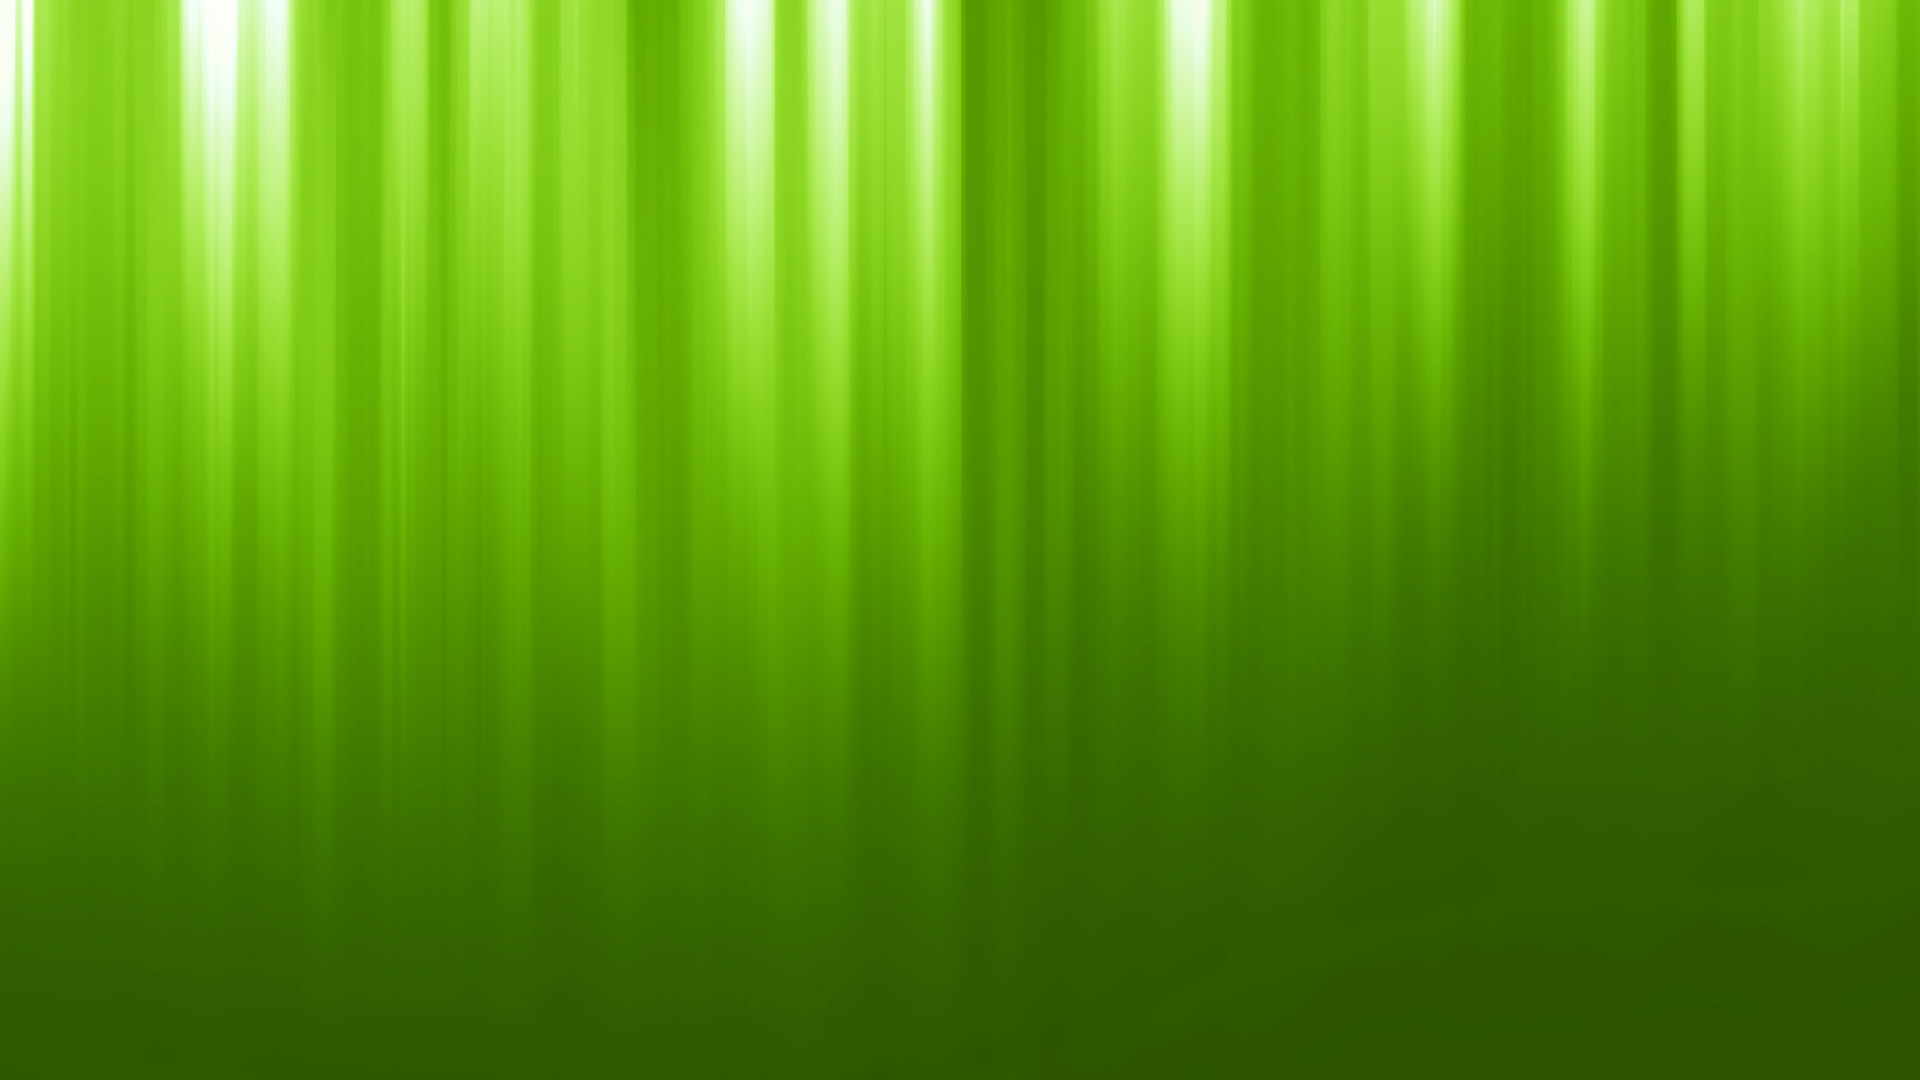 45 HD Green Wallpapers Backgrounds For Free Download